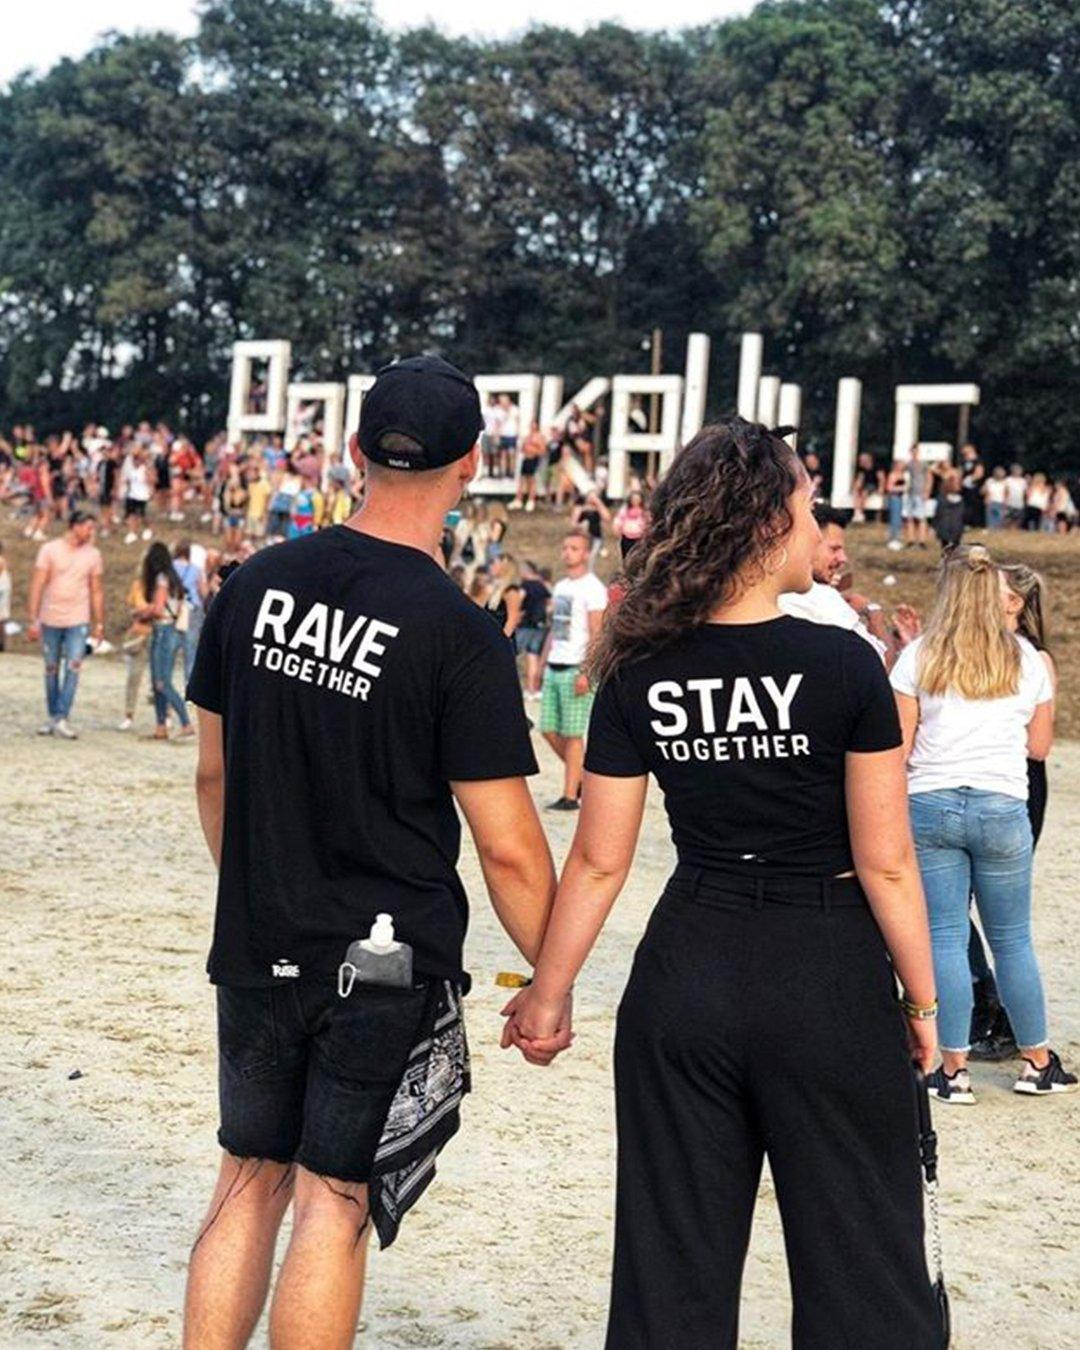 Rave Together Stay Together Partner T-Shirt Set